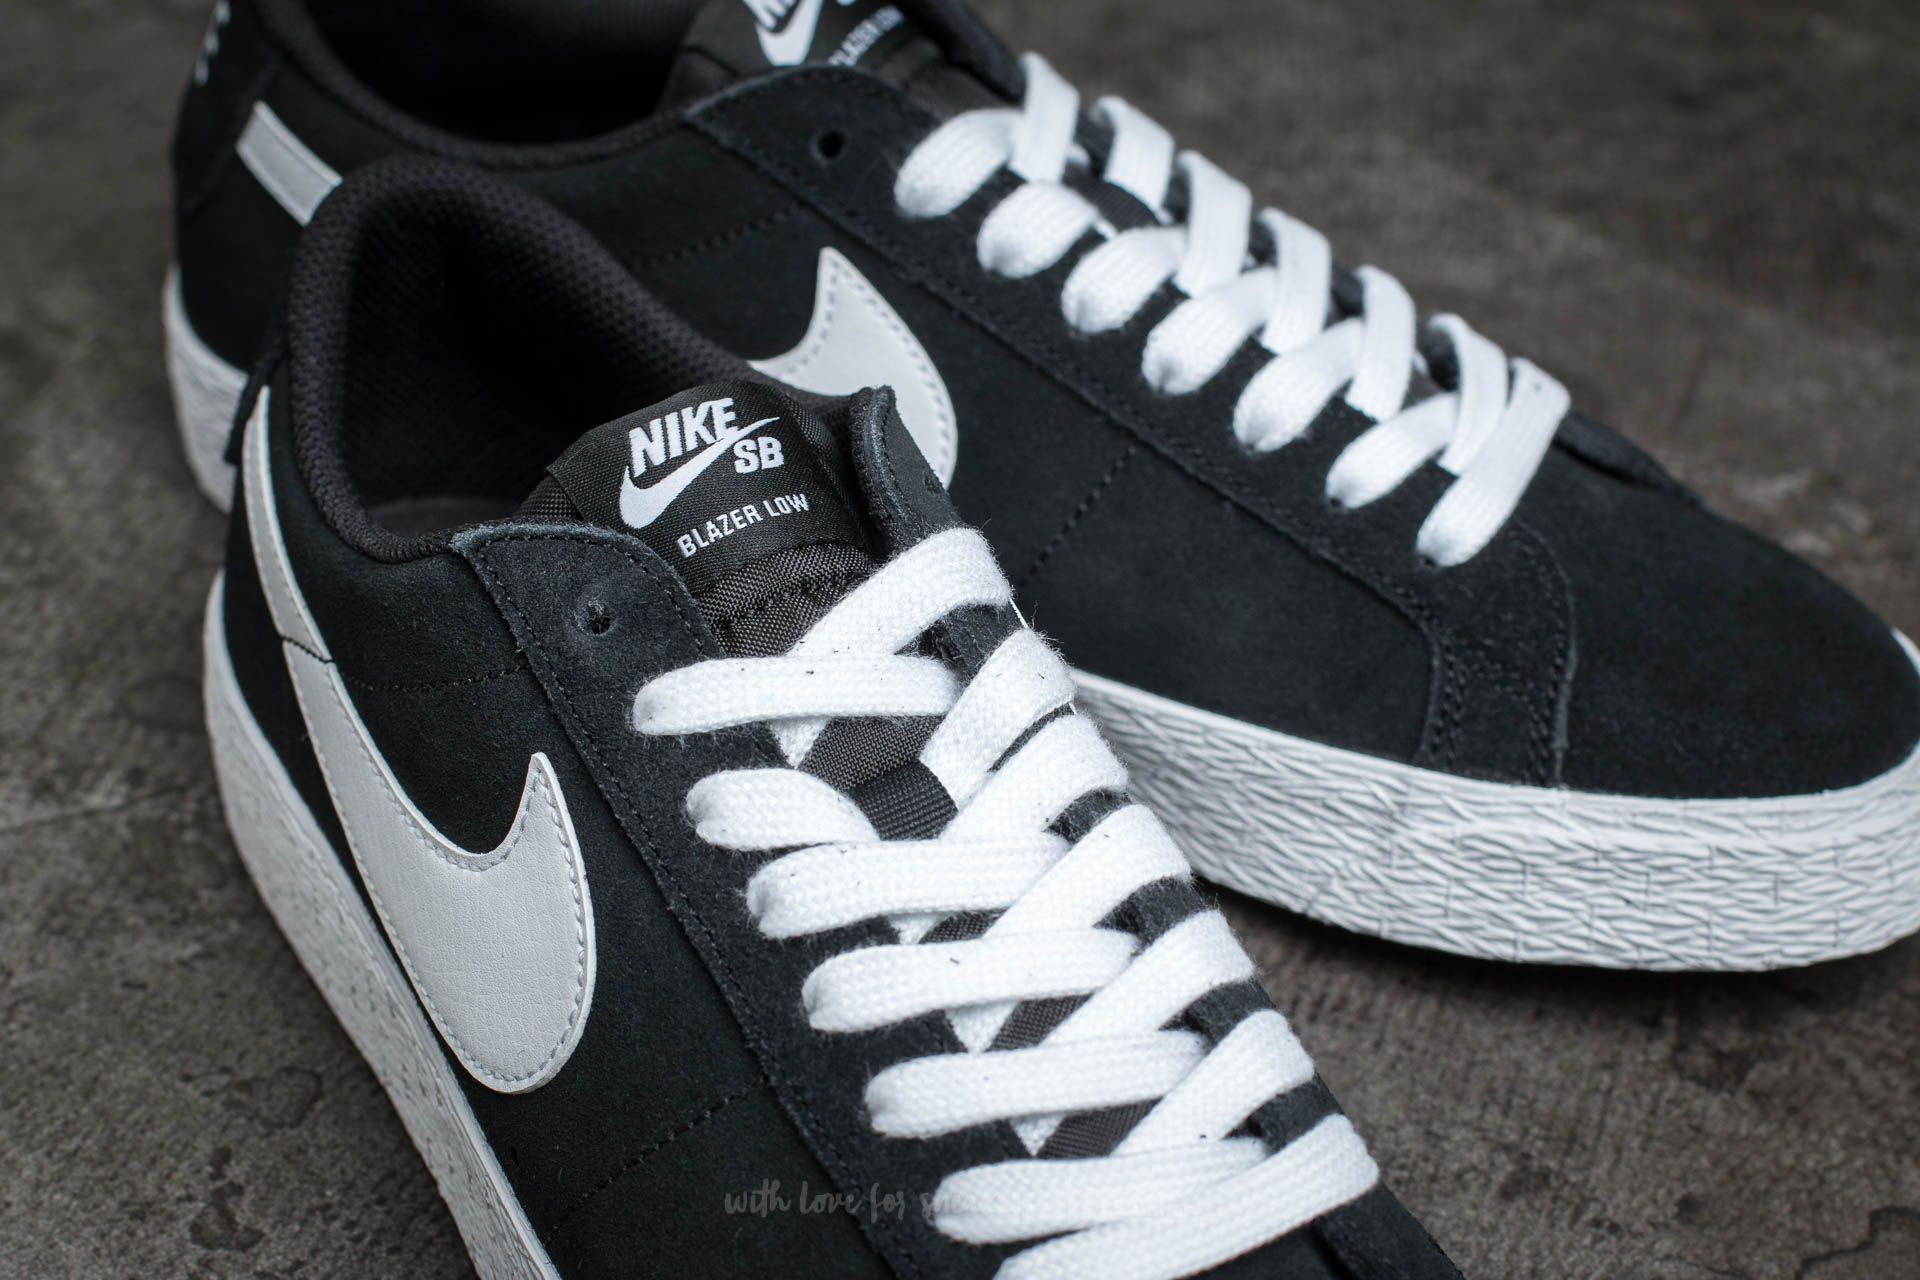 c1b7f9a0bf485 ... germany nike sb blazer zoom low black white gum light brown at a great  price 51d3a